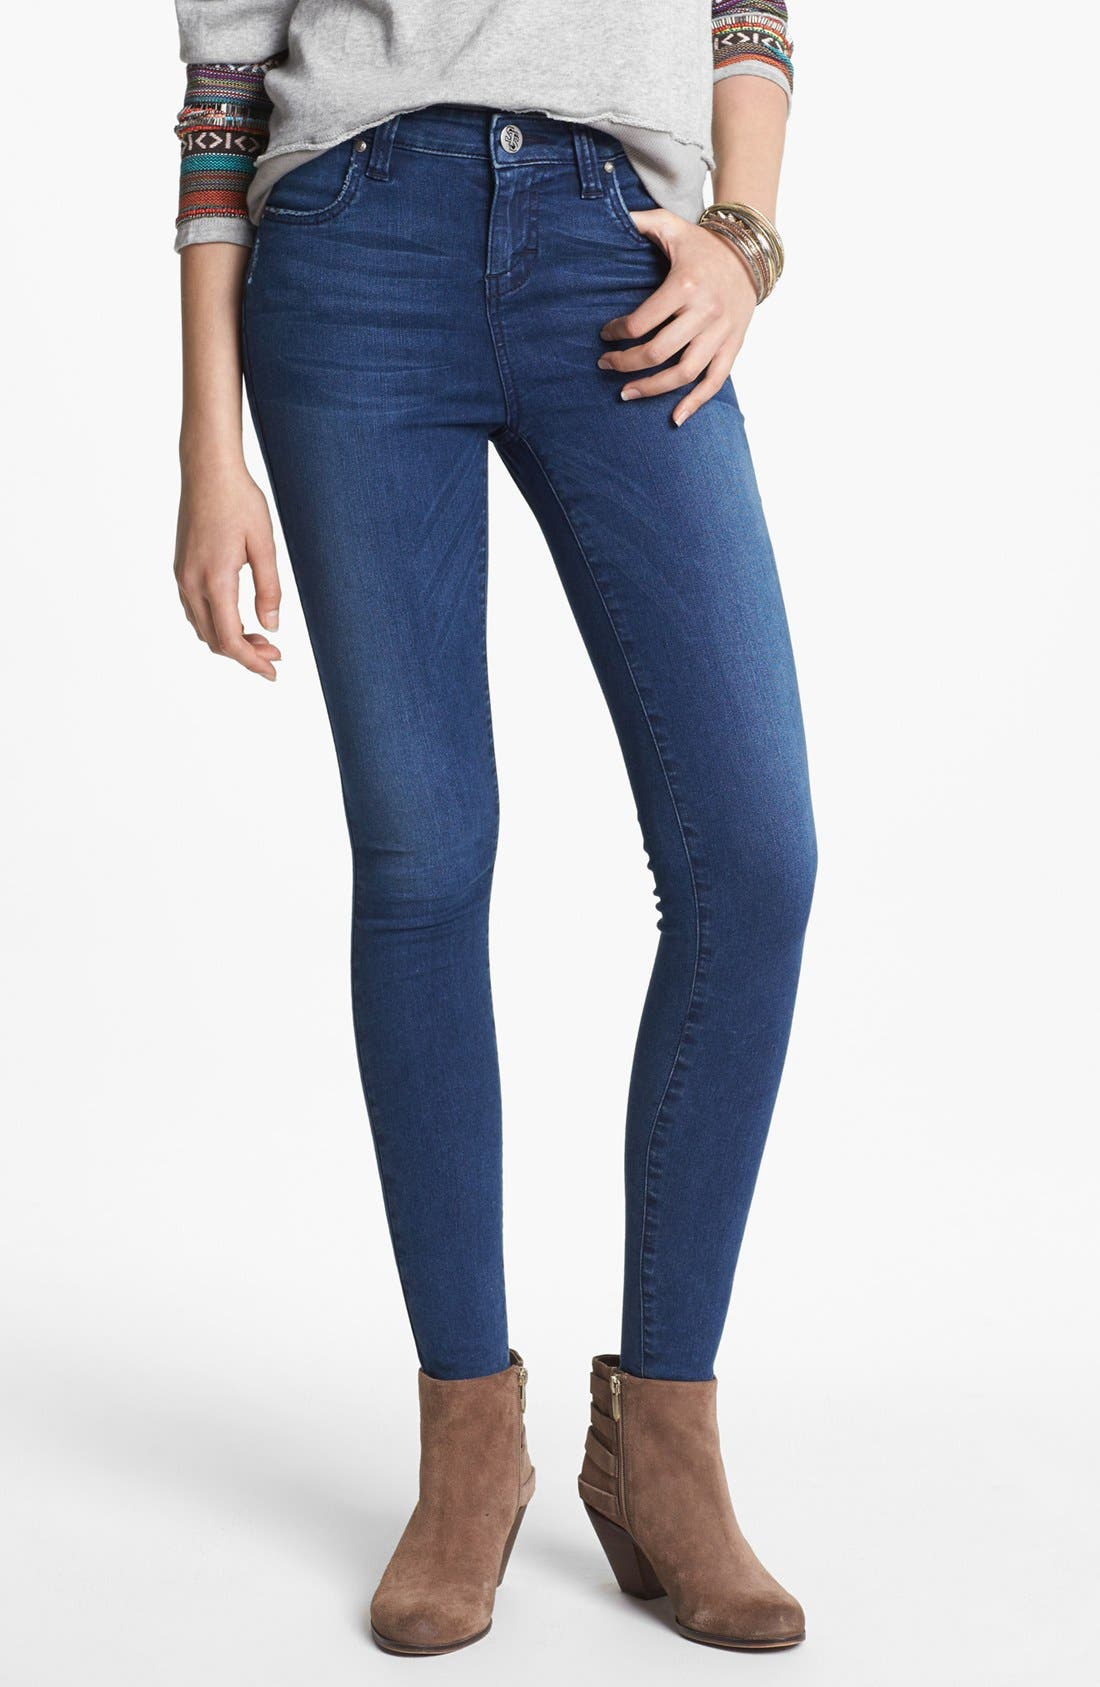 Alternate Image 1 Selected - STS Blue High Waist Skinny Jeans (Arctic Blue) (Juniors)